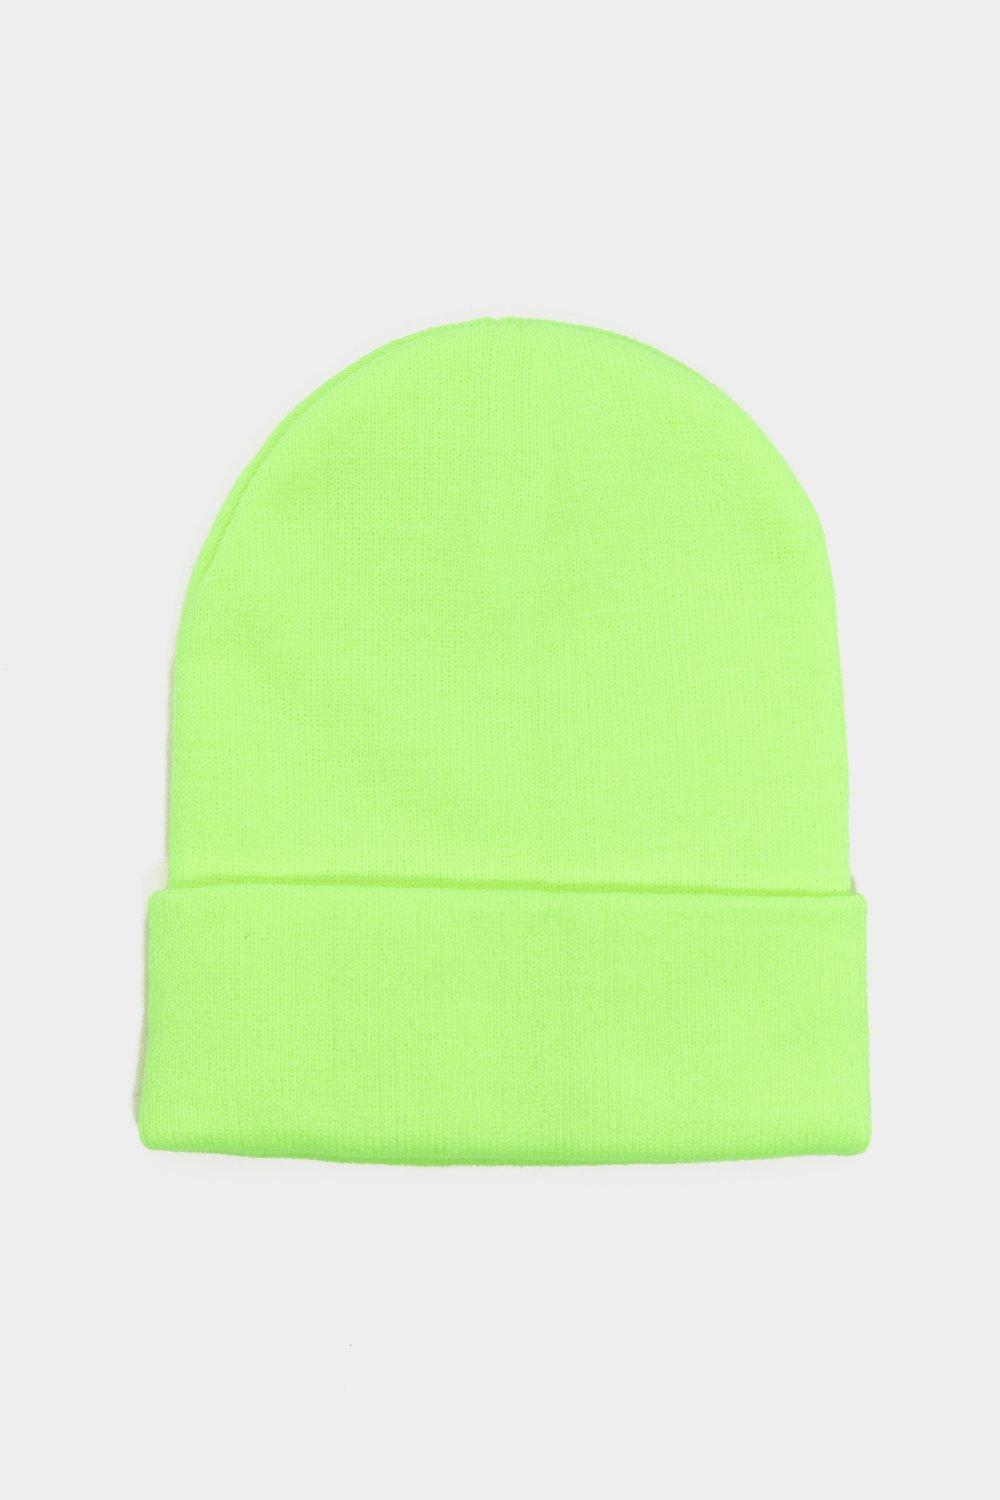 c86c7f7d7ee4a Womens Green Rave It Up Neon Beanie.